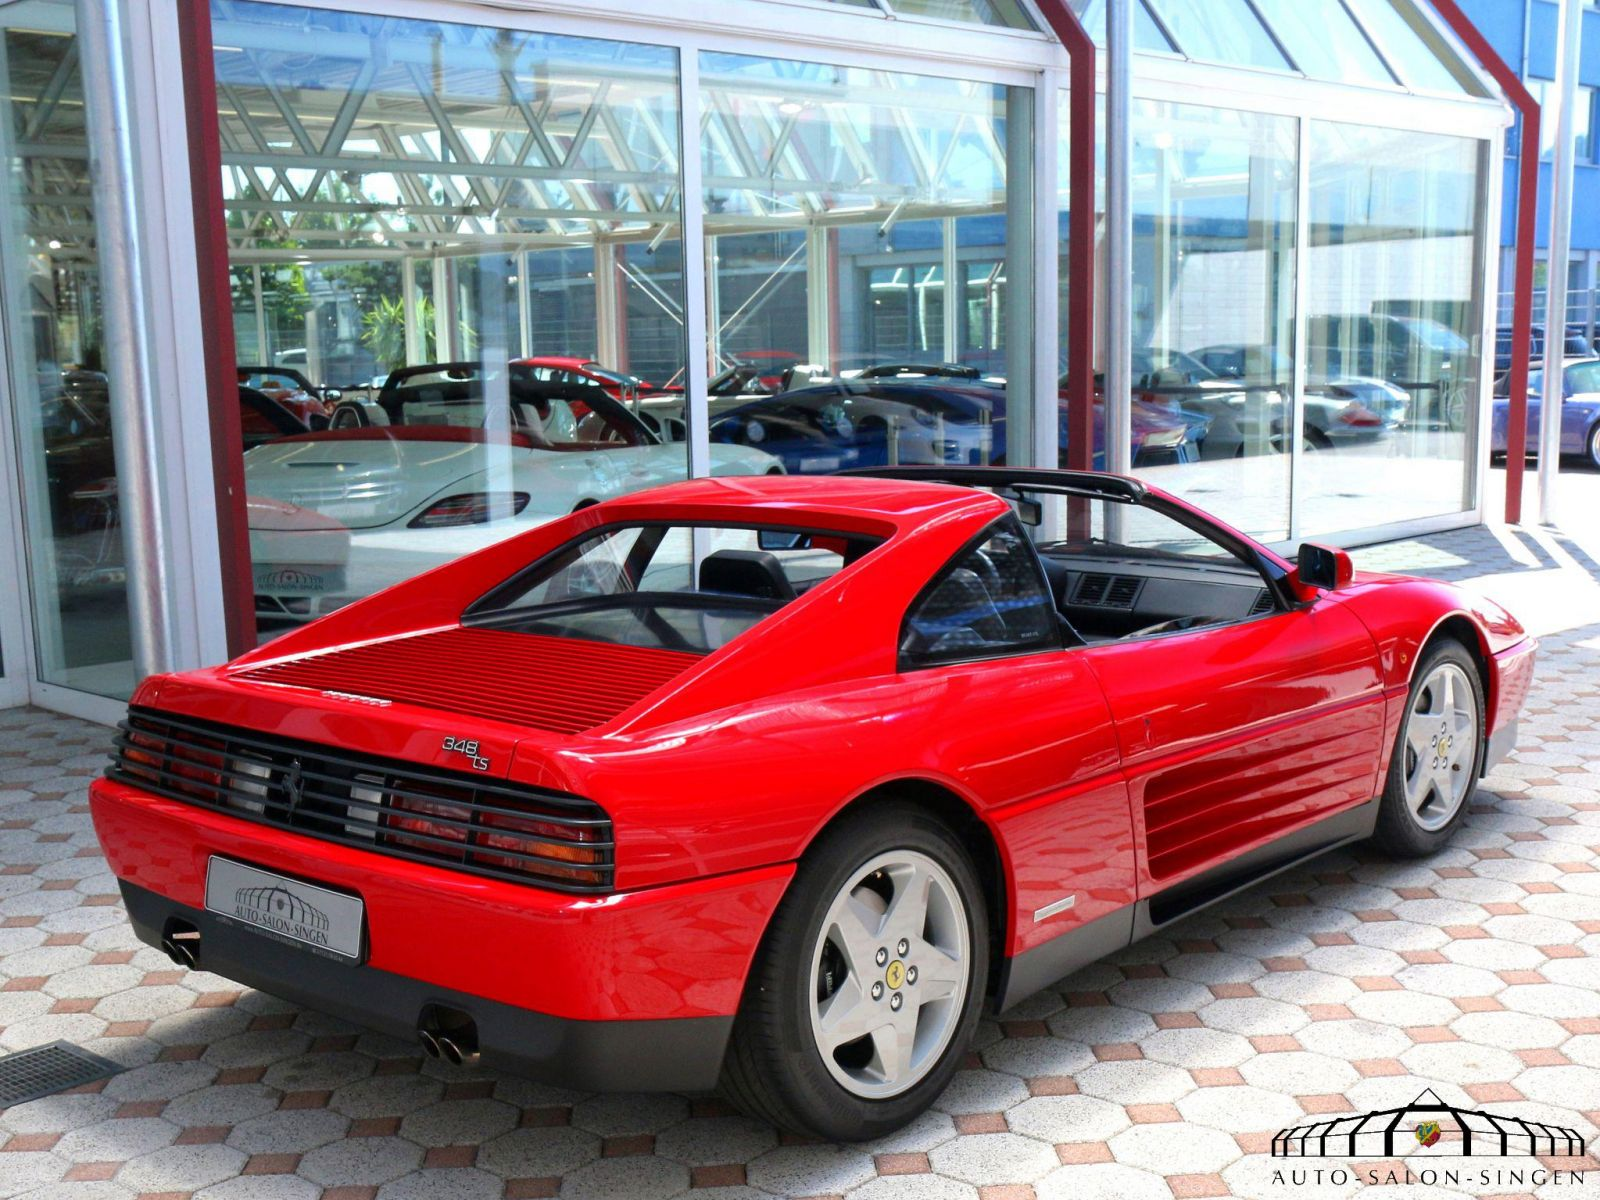 ferrari 348 ts coup auto salon singen. Black Bedroom Furniture Sets. Home Design Ideas